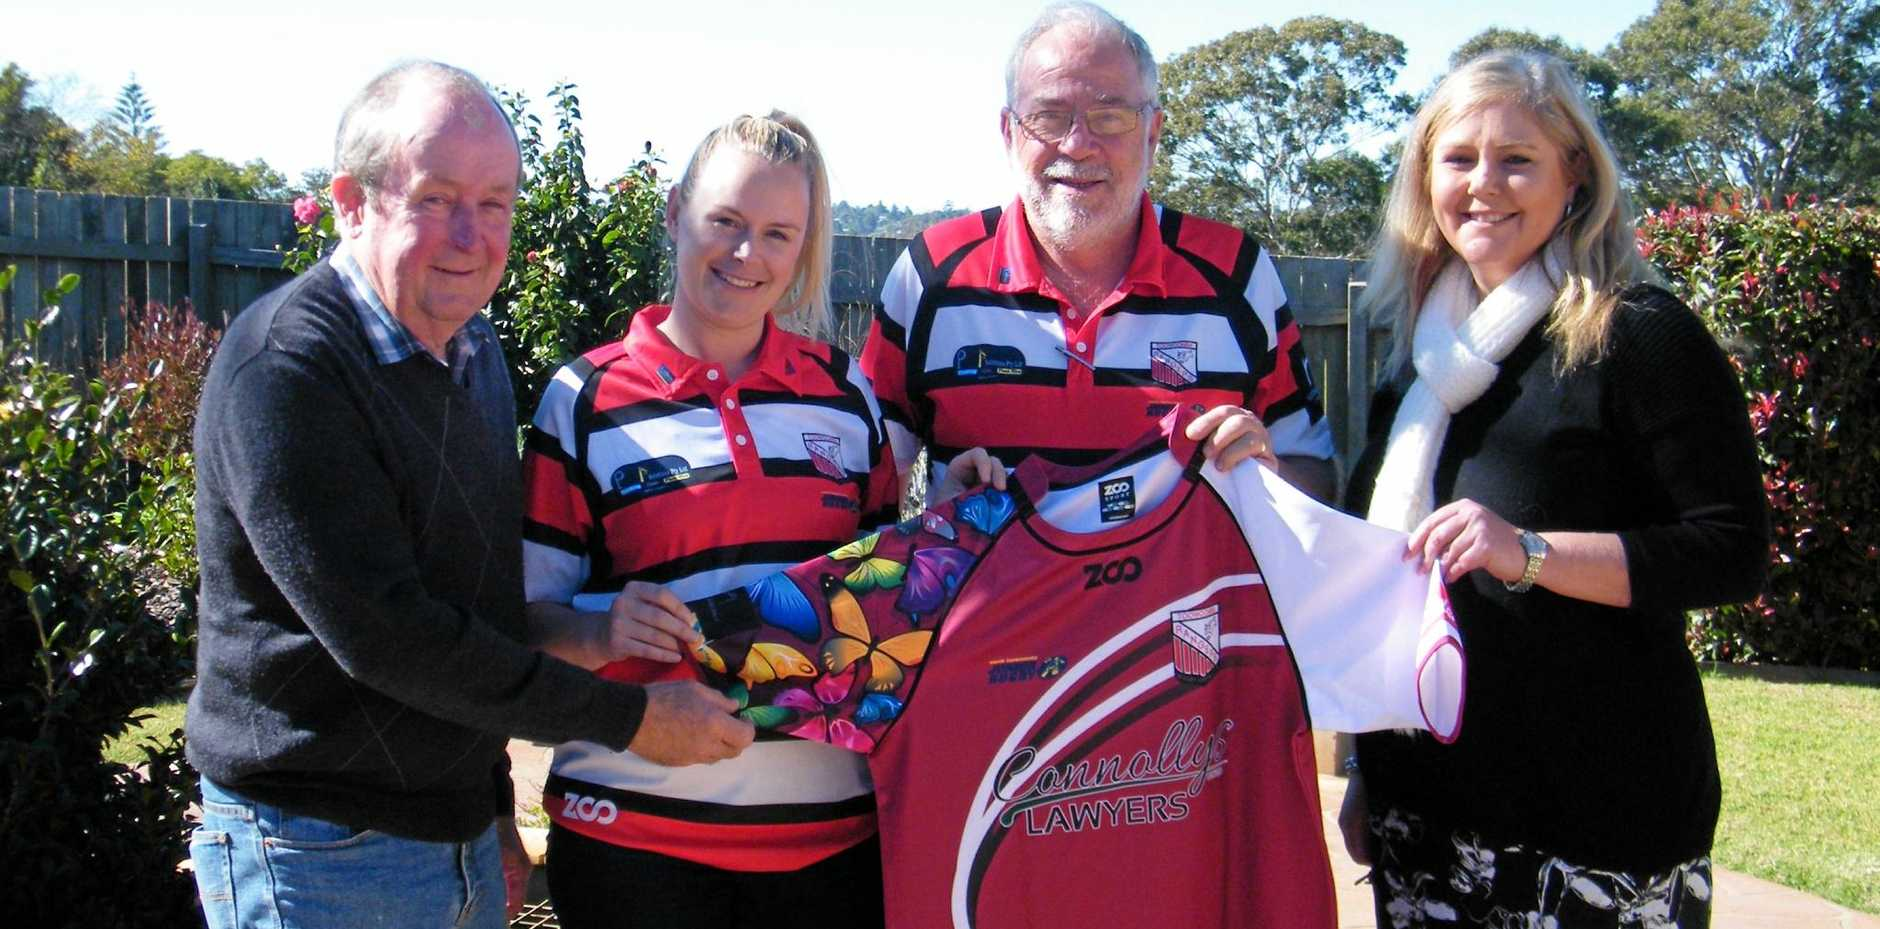 TACKLING FUNDRAISING: Toowoomba Hospice chairman Graham Barron OAM, Ladies' Day organiser Teagan Killen, Toowoomba Rangers Rugby Club secretary Danny Wiedman, and event sponsor, Andrea Hohn, from Connolly's Lawyers with one of the specially designed player jerseys.